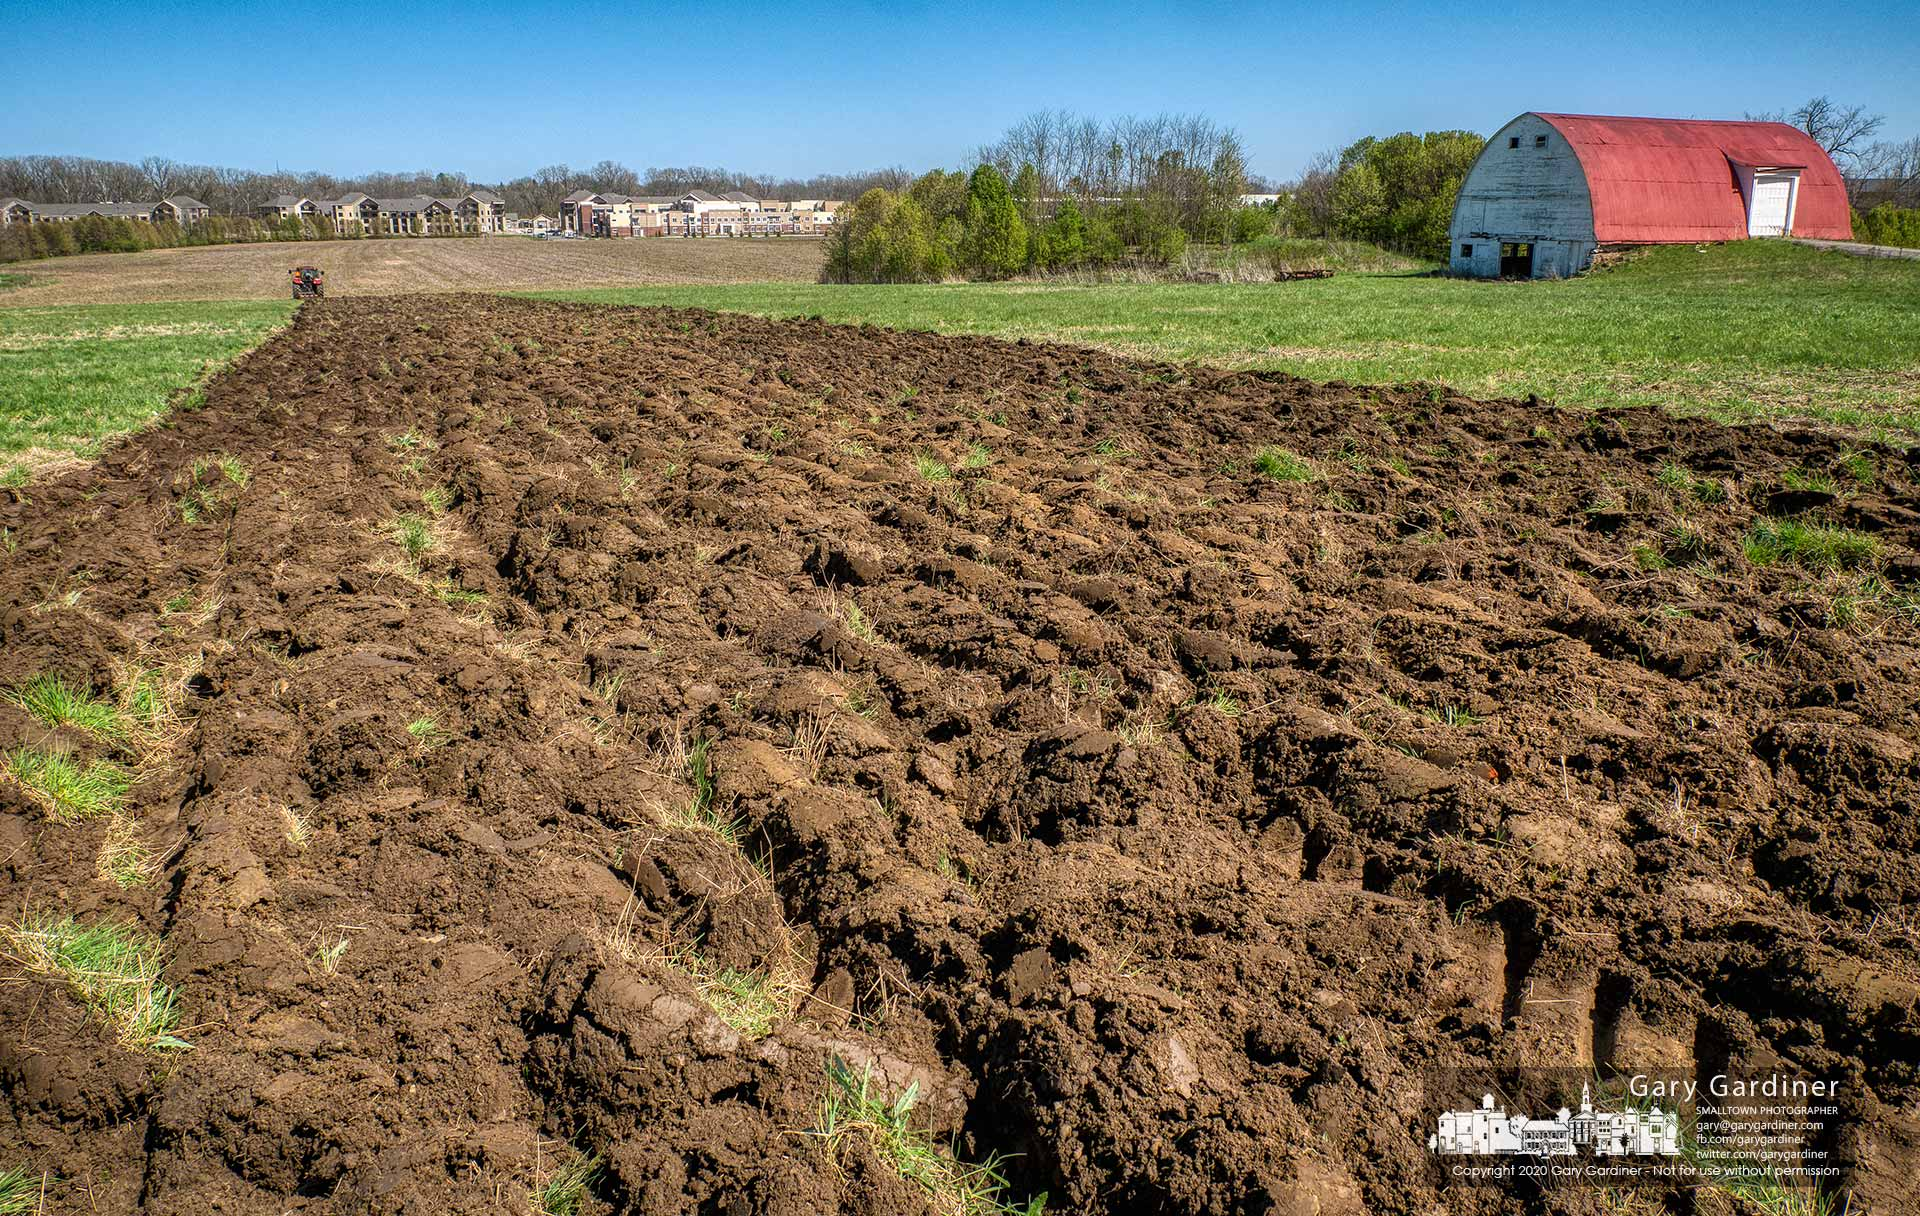 Rows of freshly plowed field are the first markers at the Braun Farm where the hay fields adjacent to the barn will be planted with corn later this spring. My Final Photo for April 20, 2020.